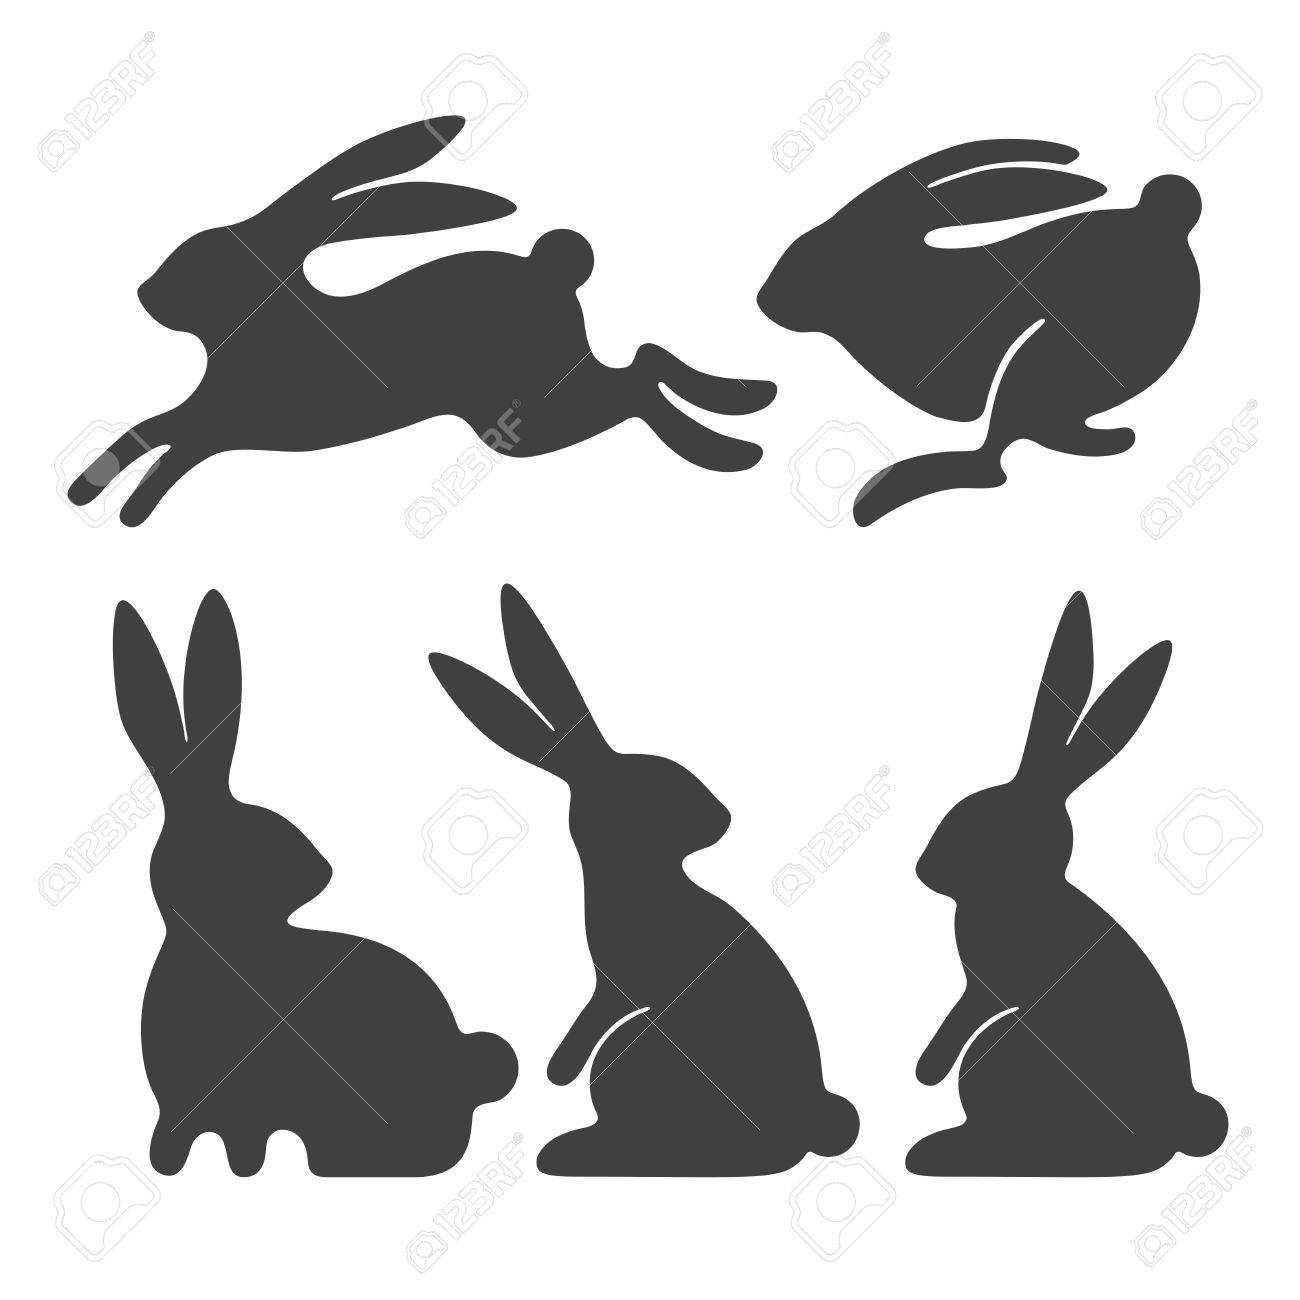 Stylized silhouettes of sitting and running rabbits - 85124086